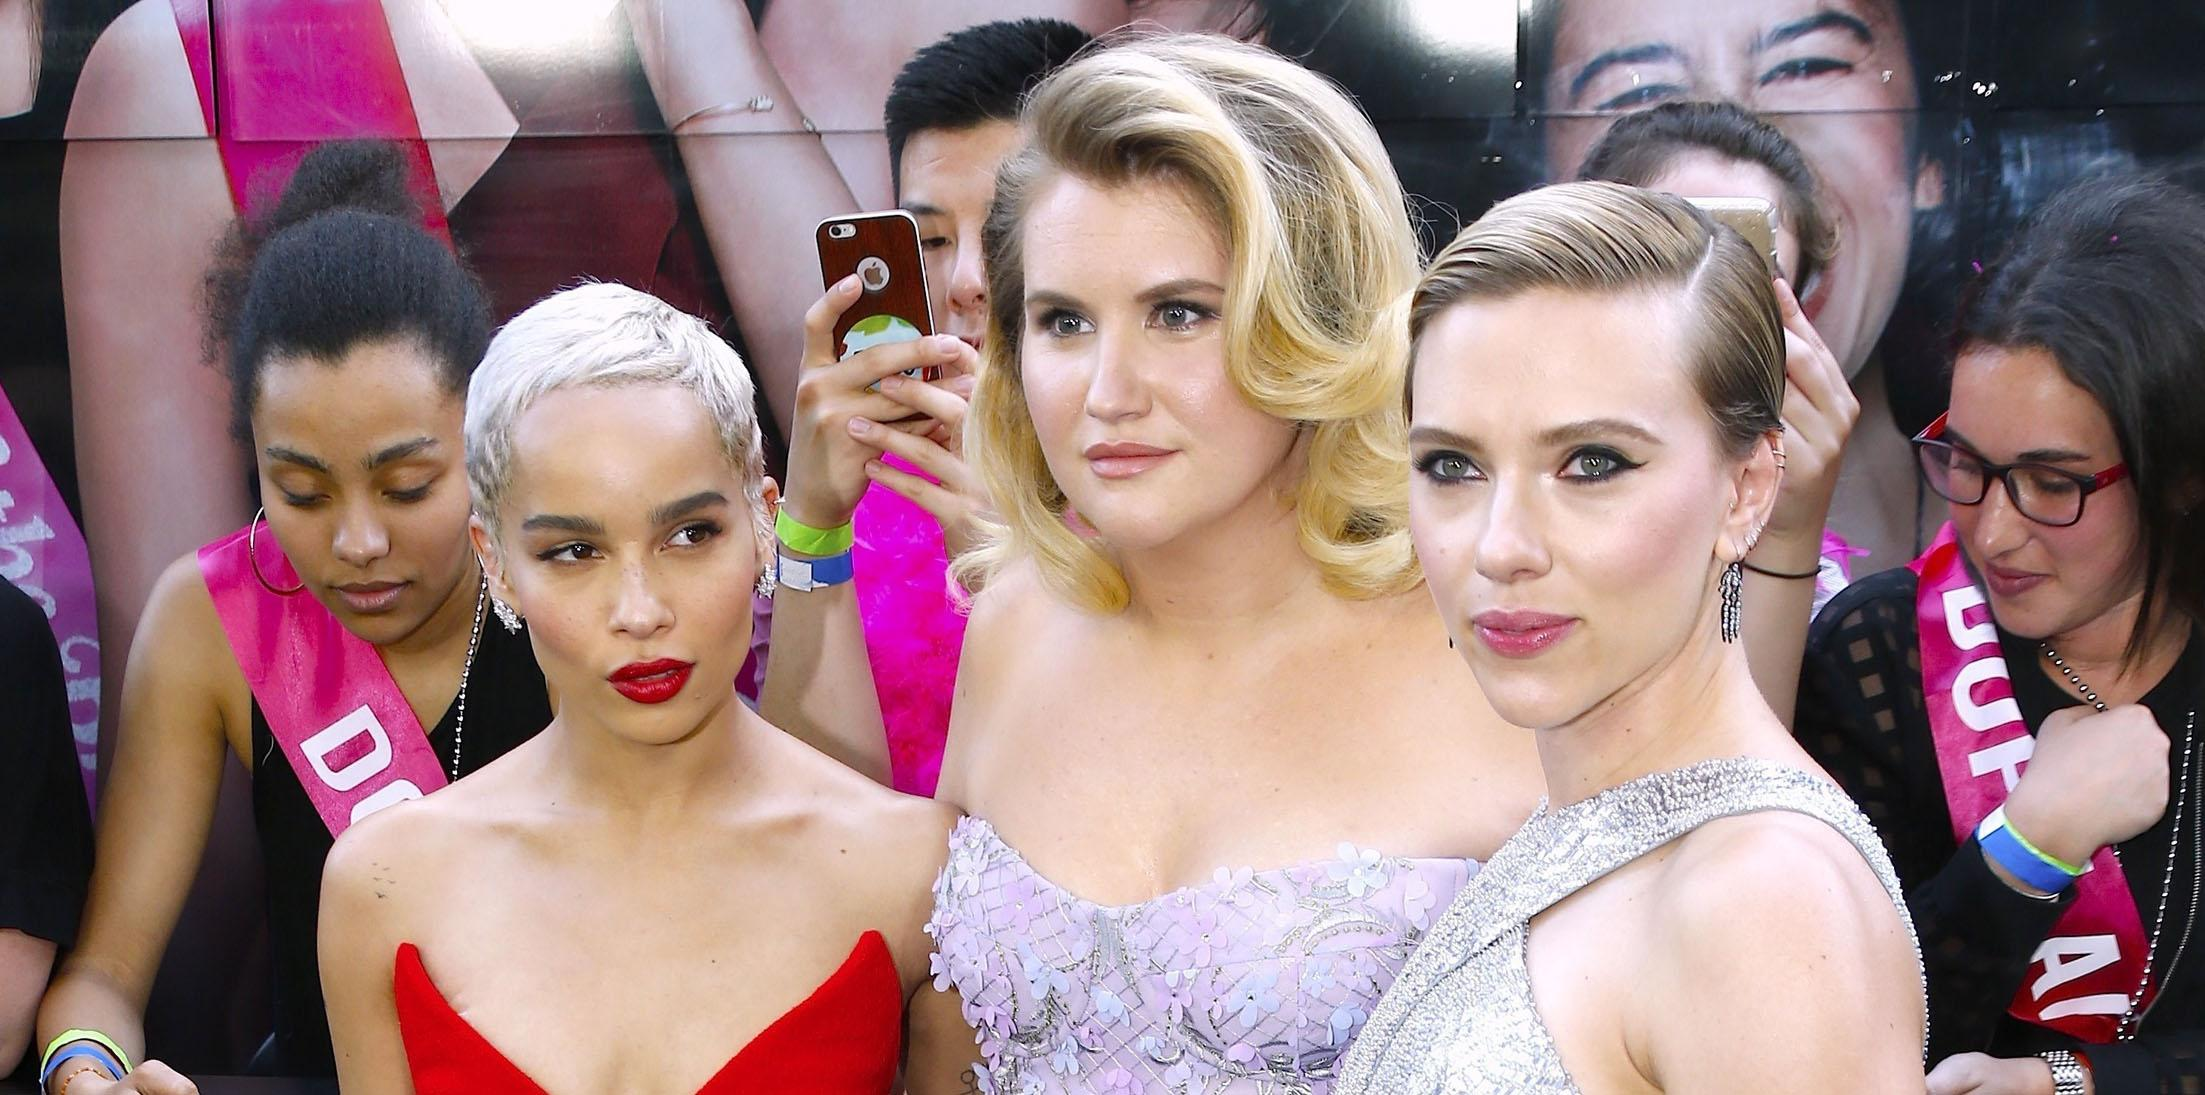 The premiere of 'Rough Night' in New York